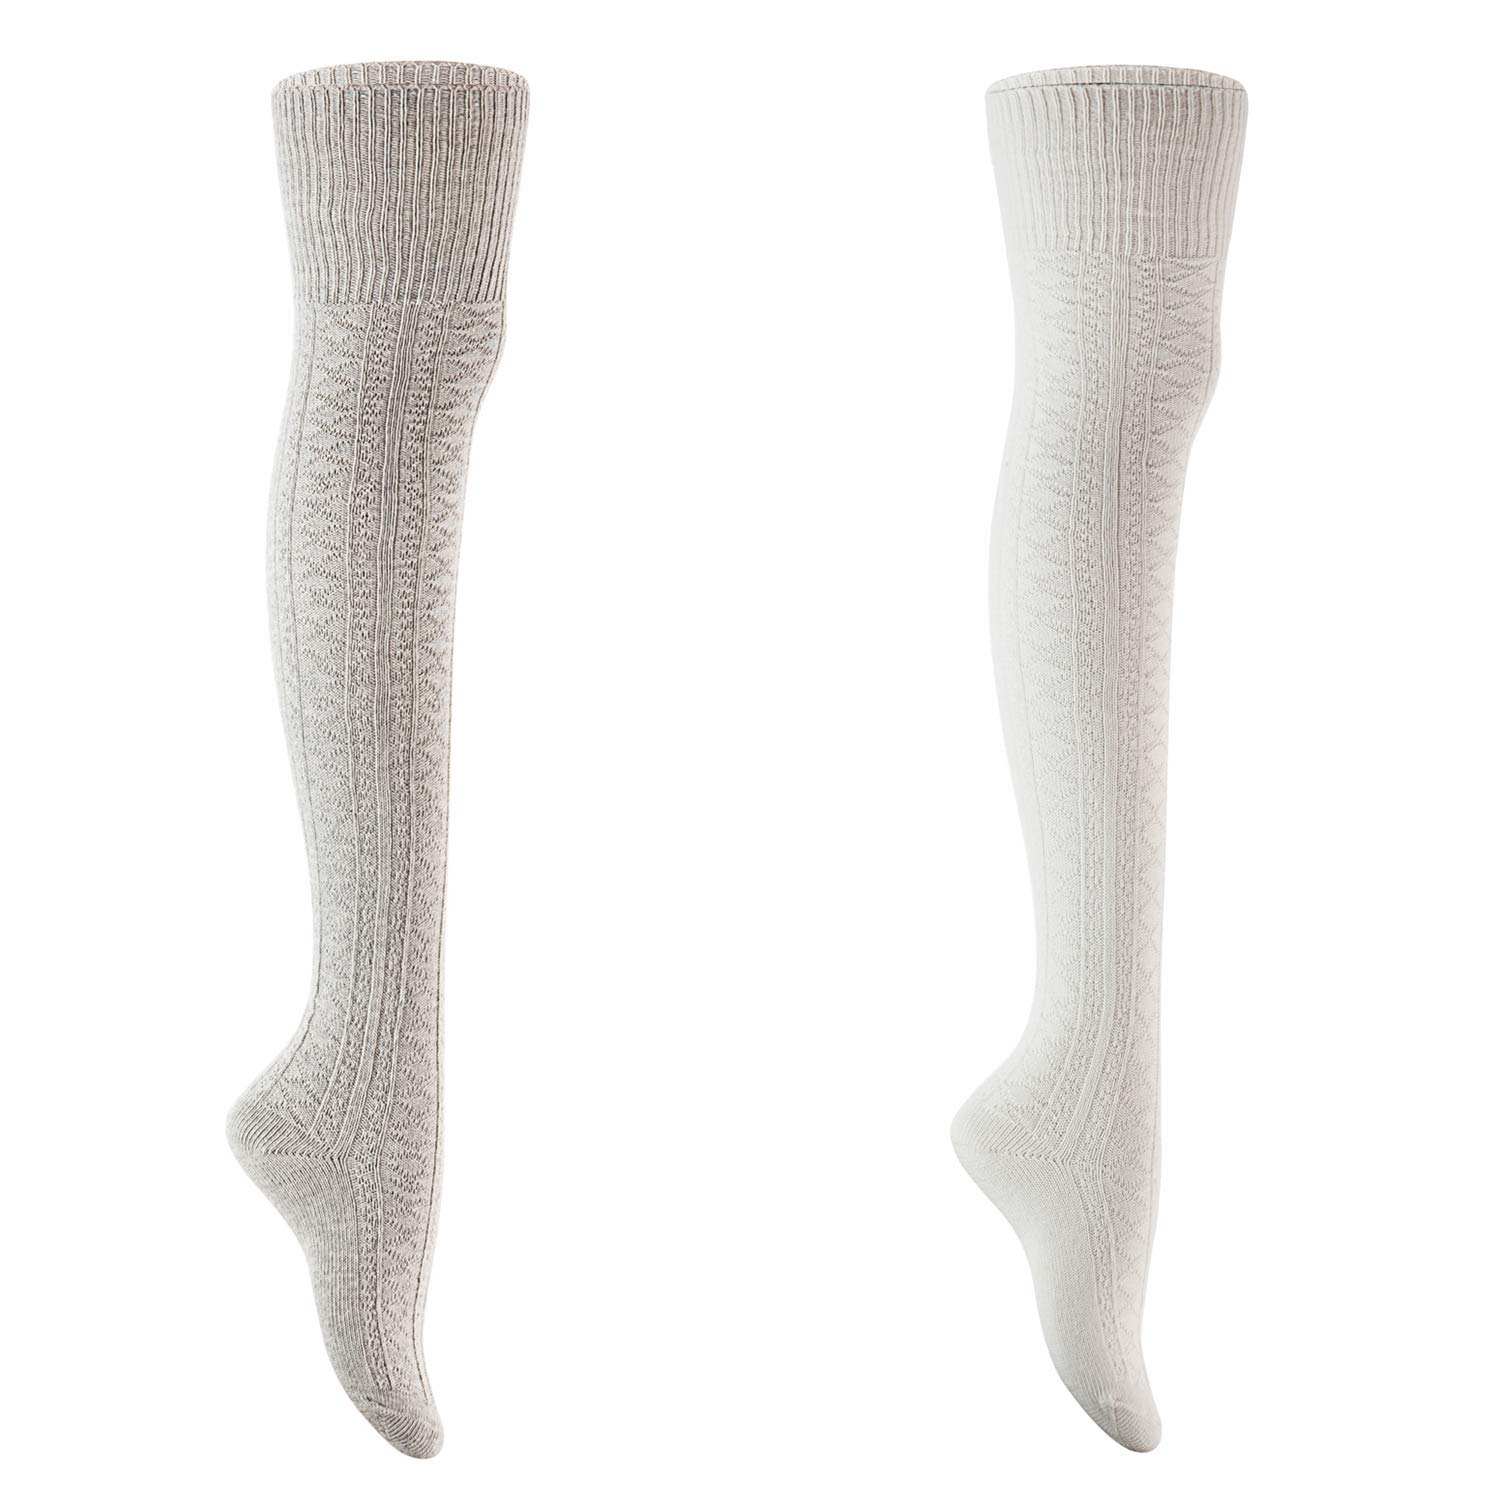 Cream+grey AATMart Women's 2 Pairs Fashion KneeHigh Cotton Socks M1025 Size 59